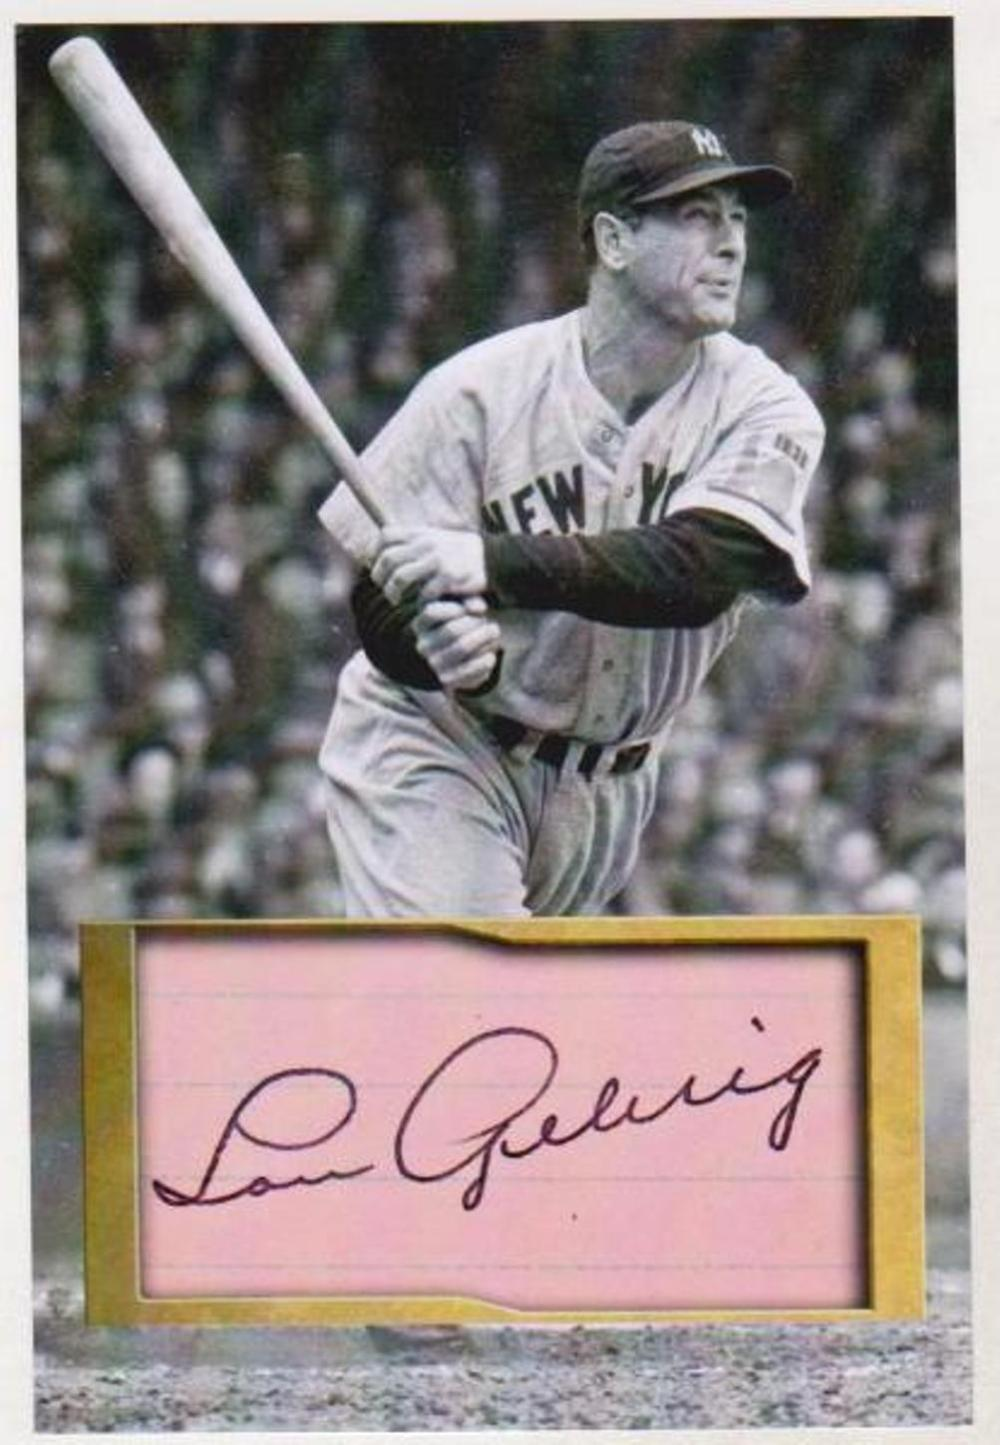 43830f6a7 Lou Gehrig 4x6 Photo w/ Facsimile Signature - Nice For Framing!